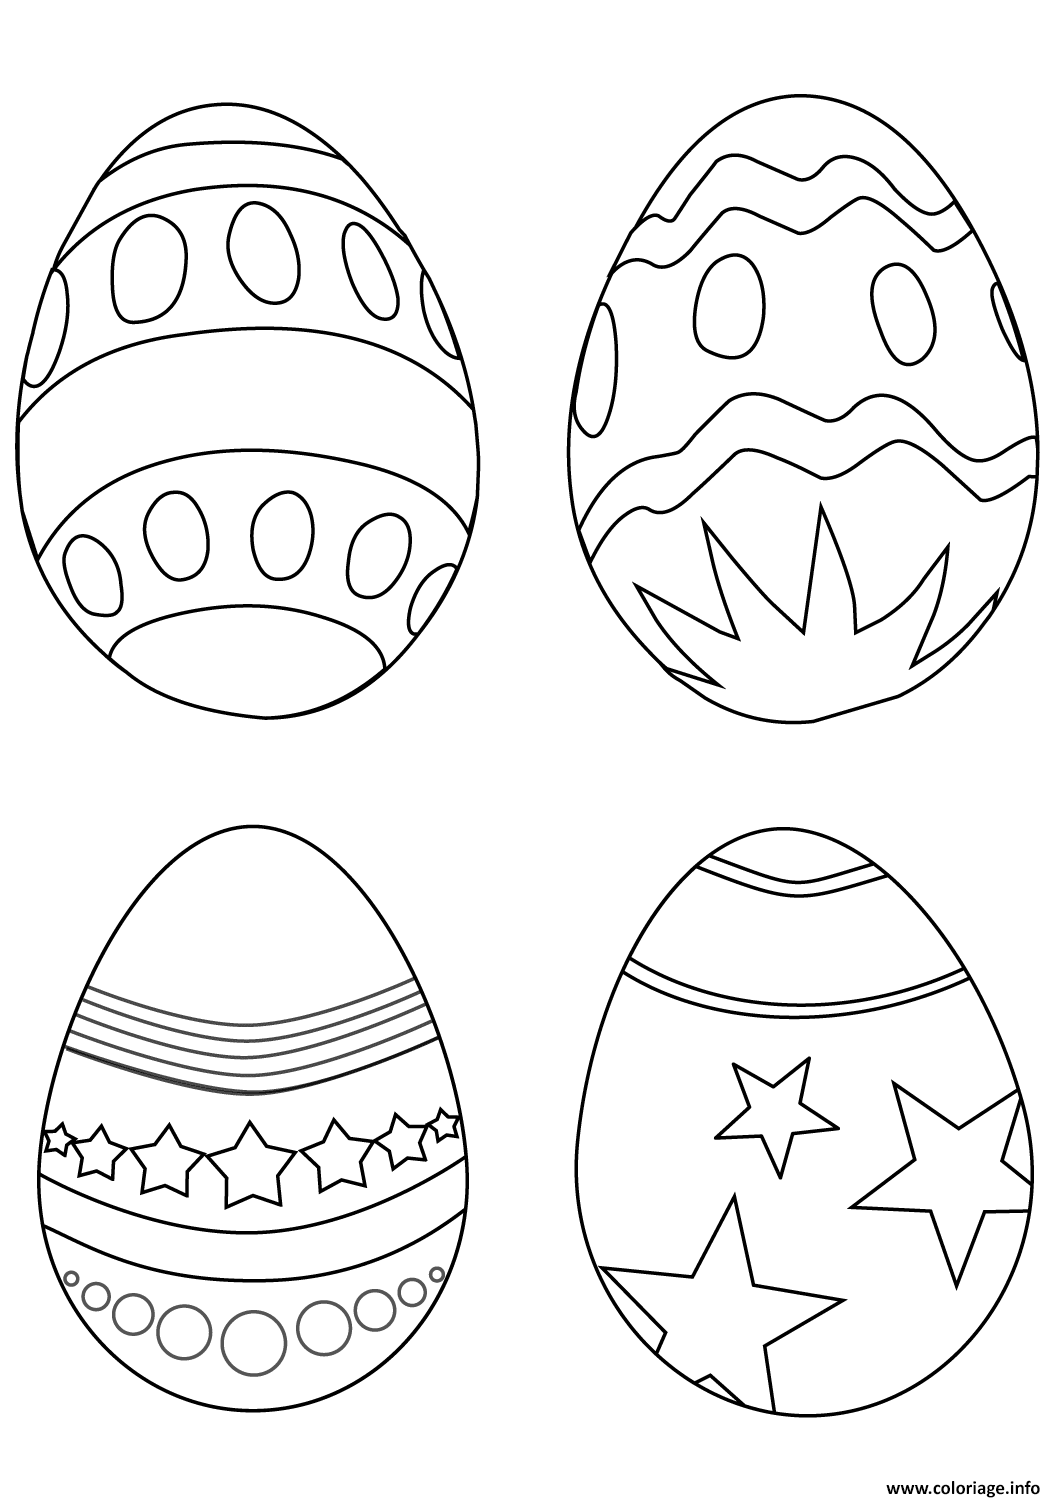 Coloriage simple oeuf de paquess - Coloriage simple ...